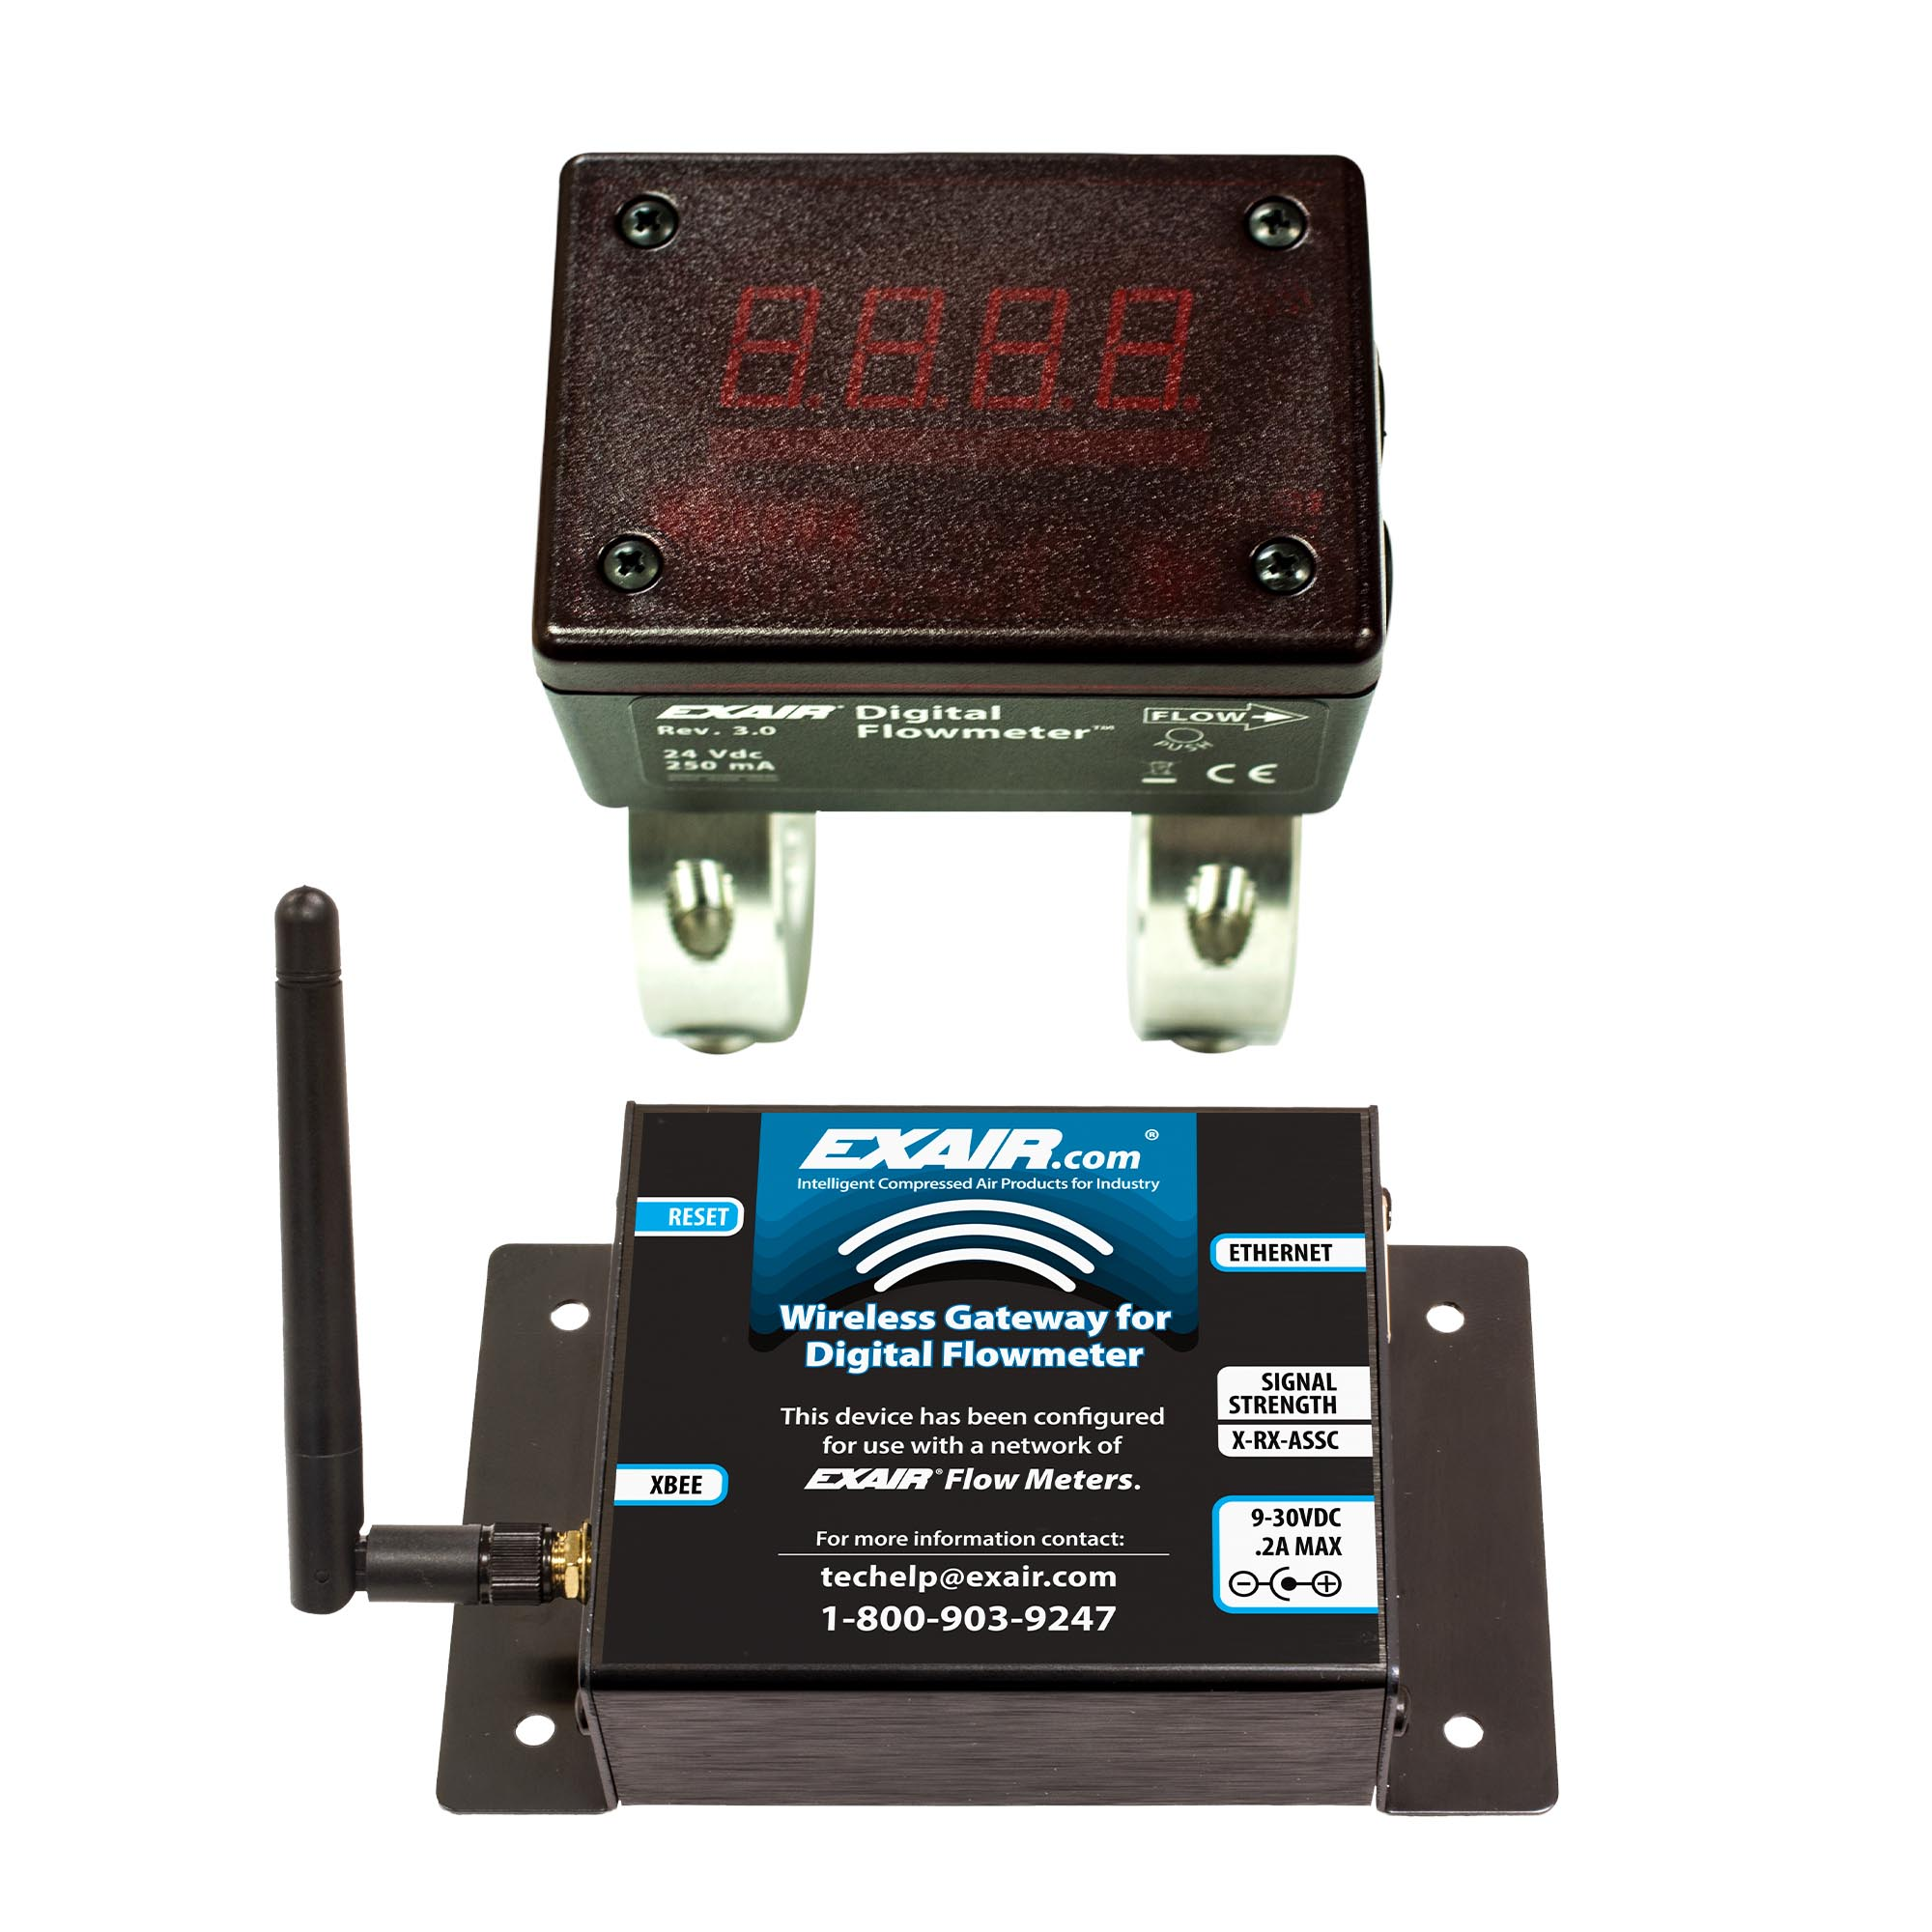 Digital Flowmeter and Wireless Gateway